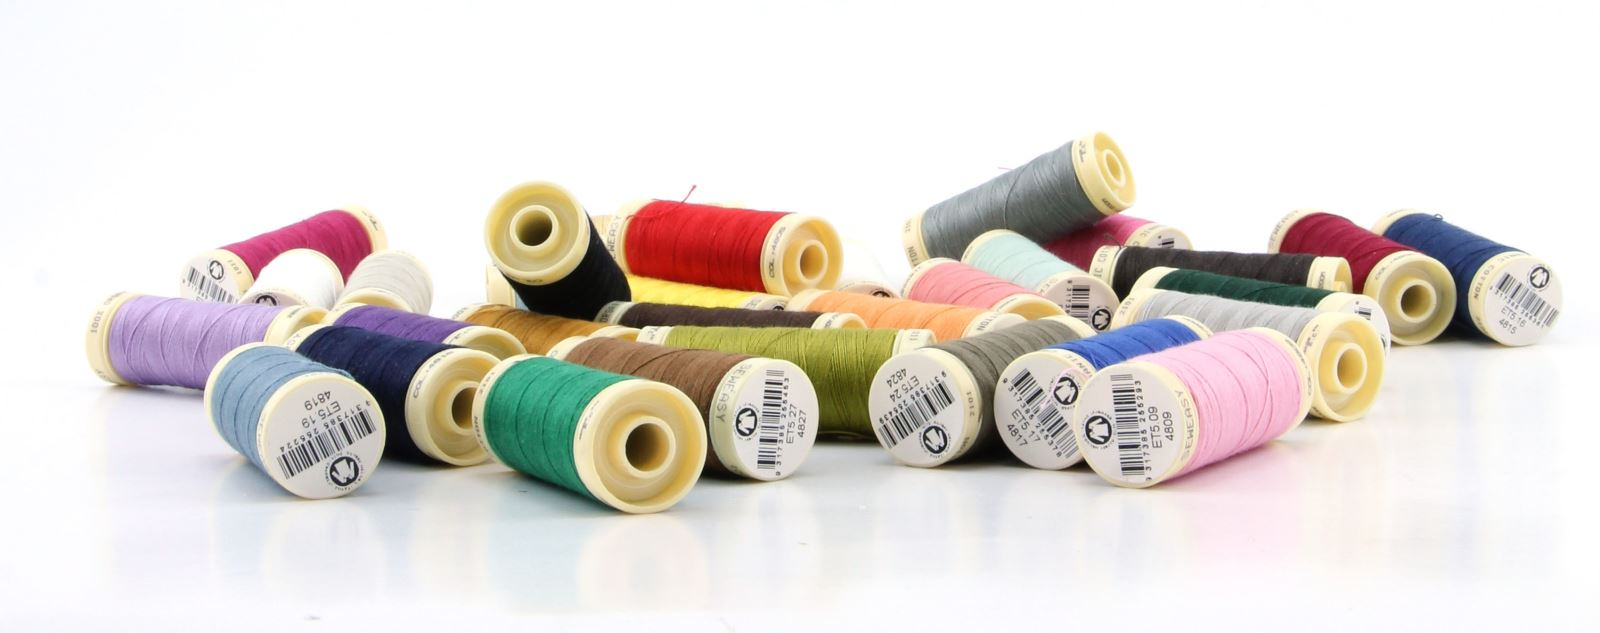 Sew Easy - 20 Assorted 100% Organic Cotton Thread